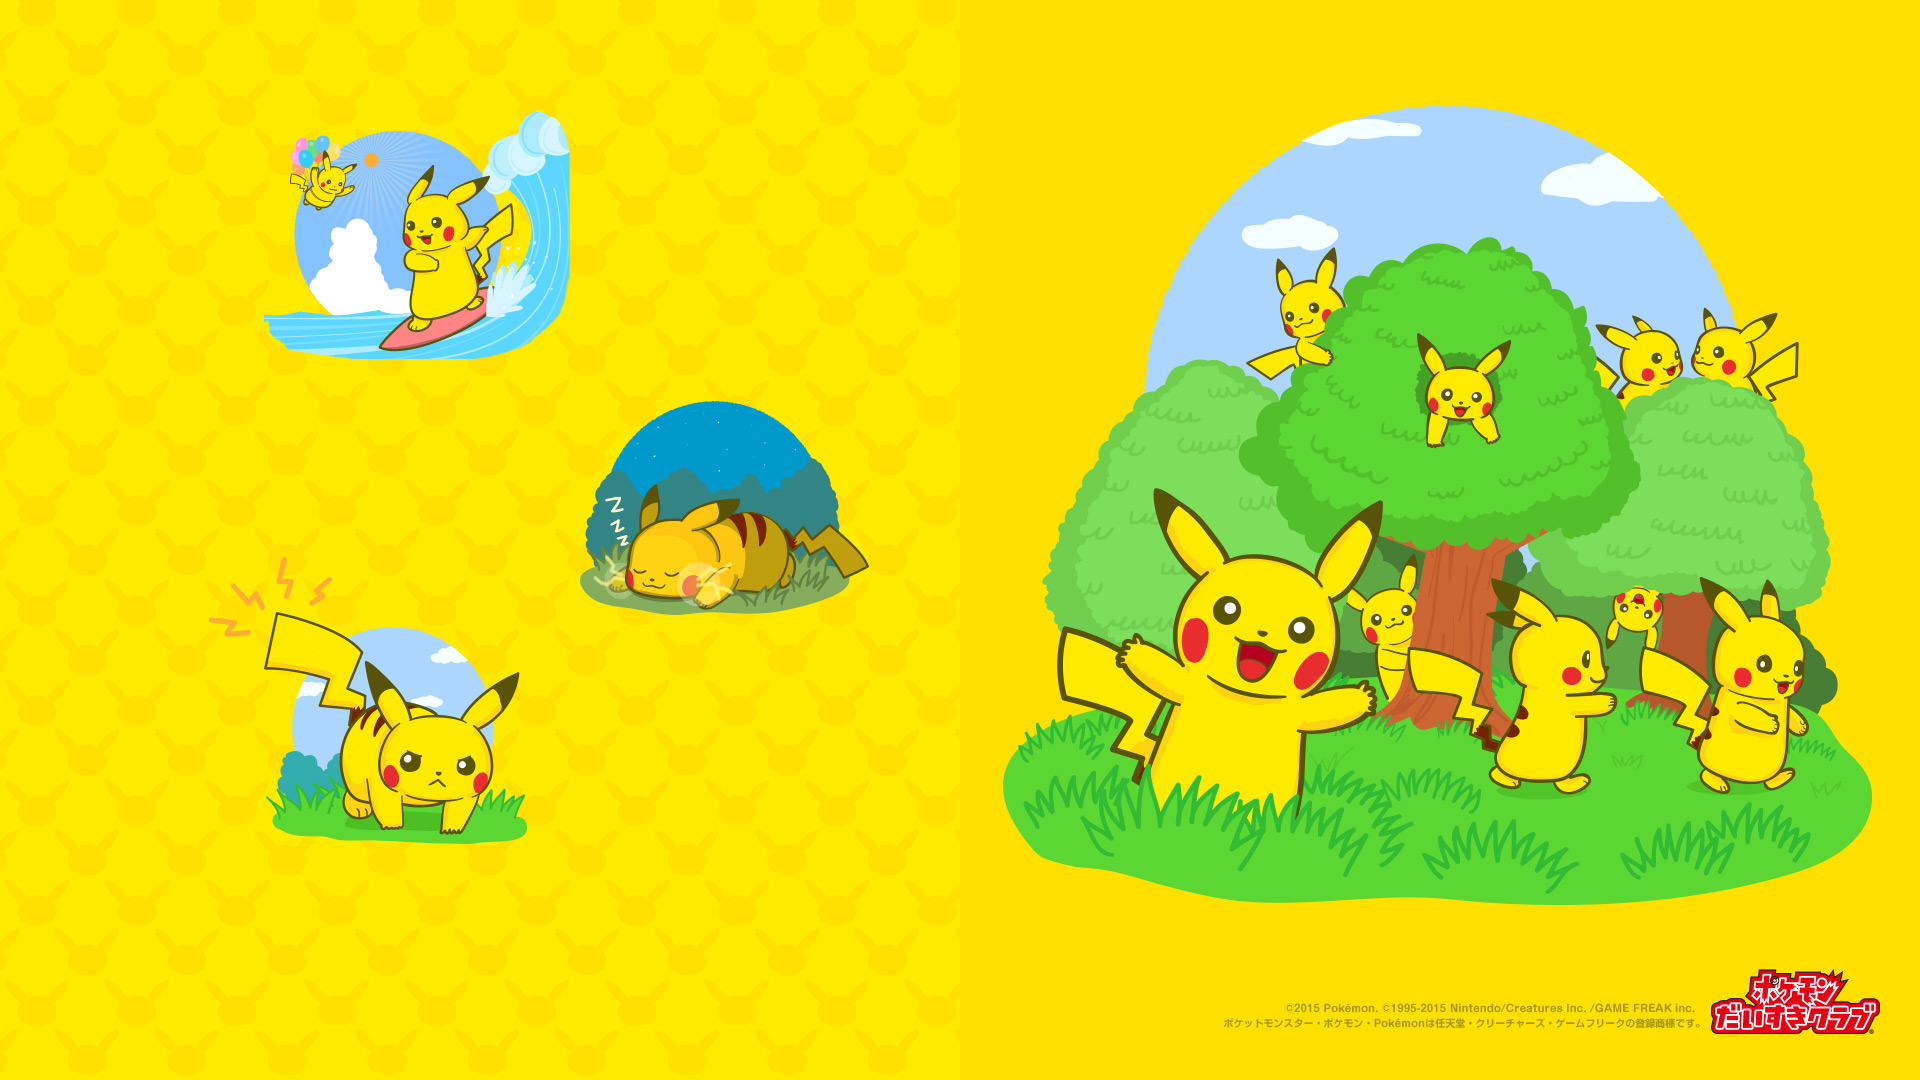 pc_pikachu_wp1920x1080.jpg